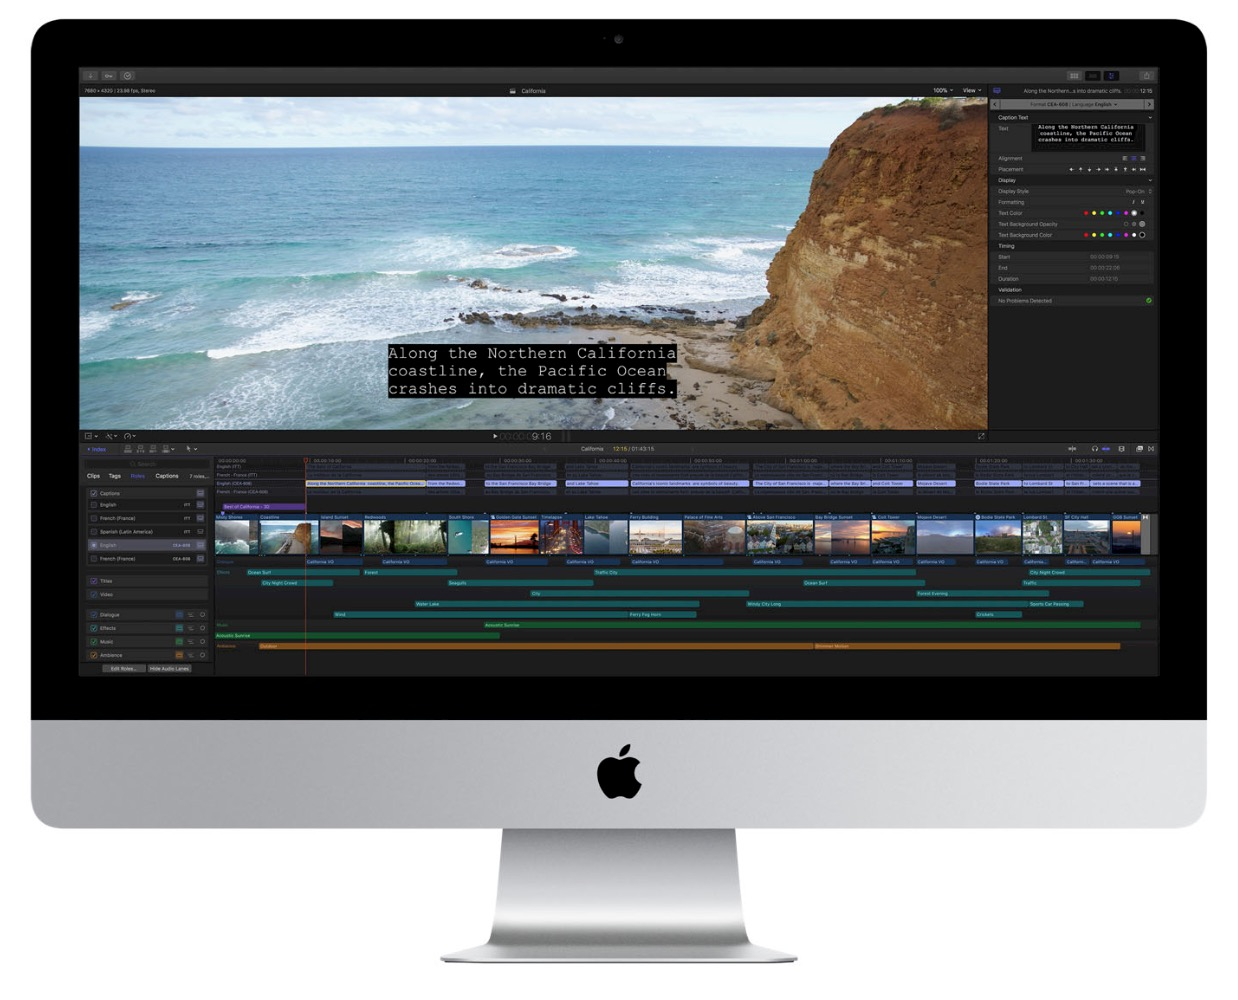 Apple prepares a new Final Cut Pro X update for NAB 2018 13